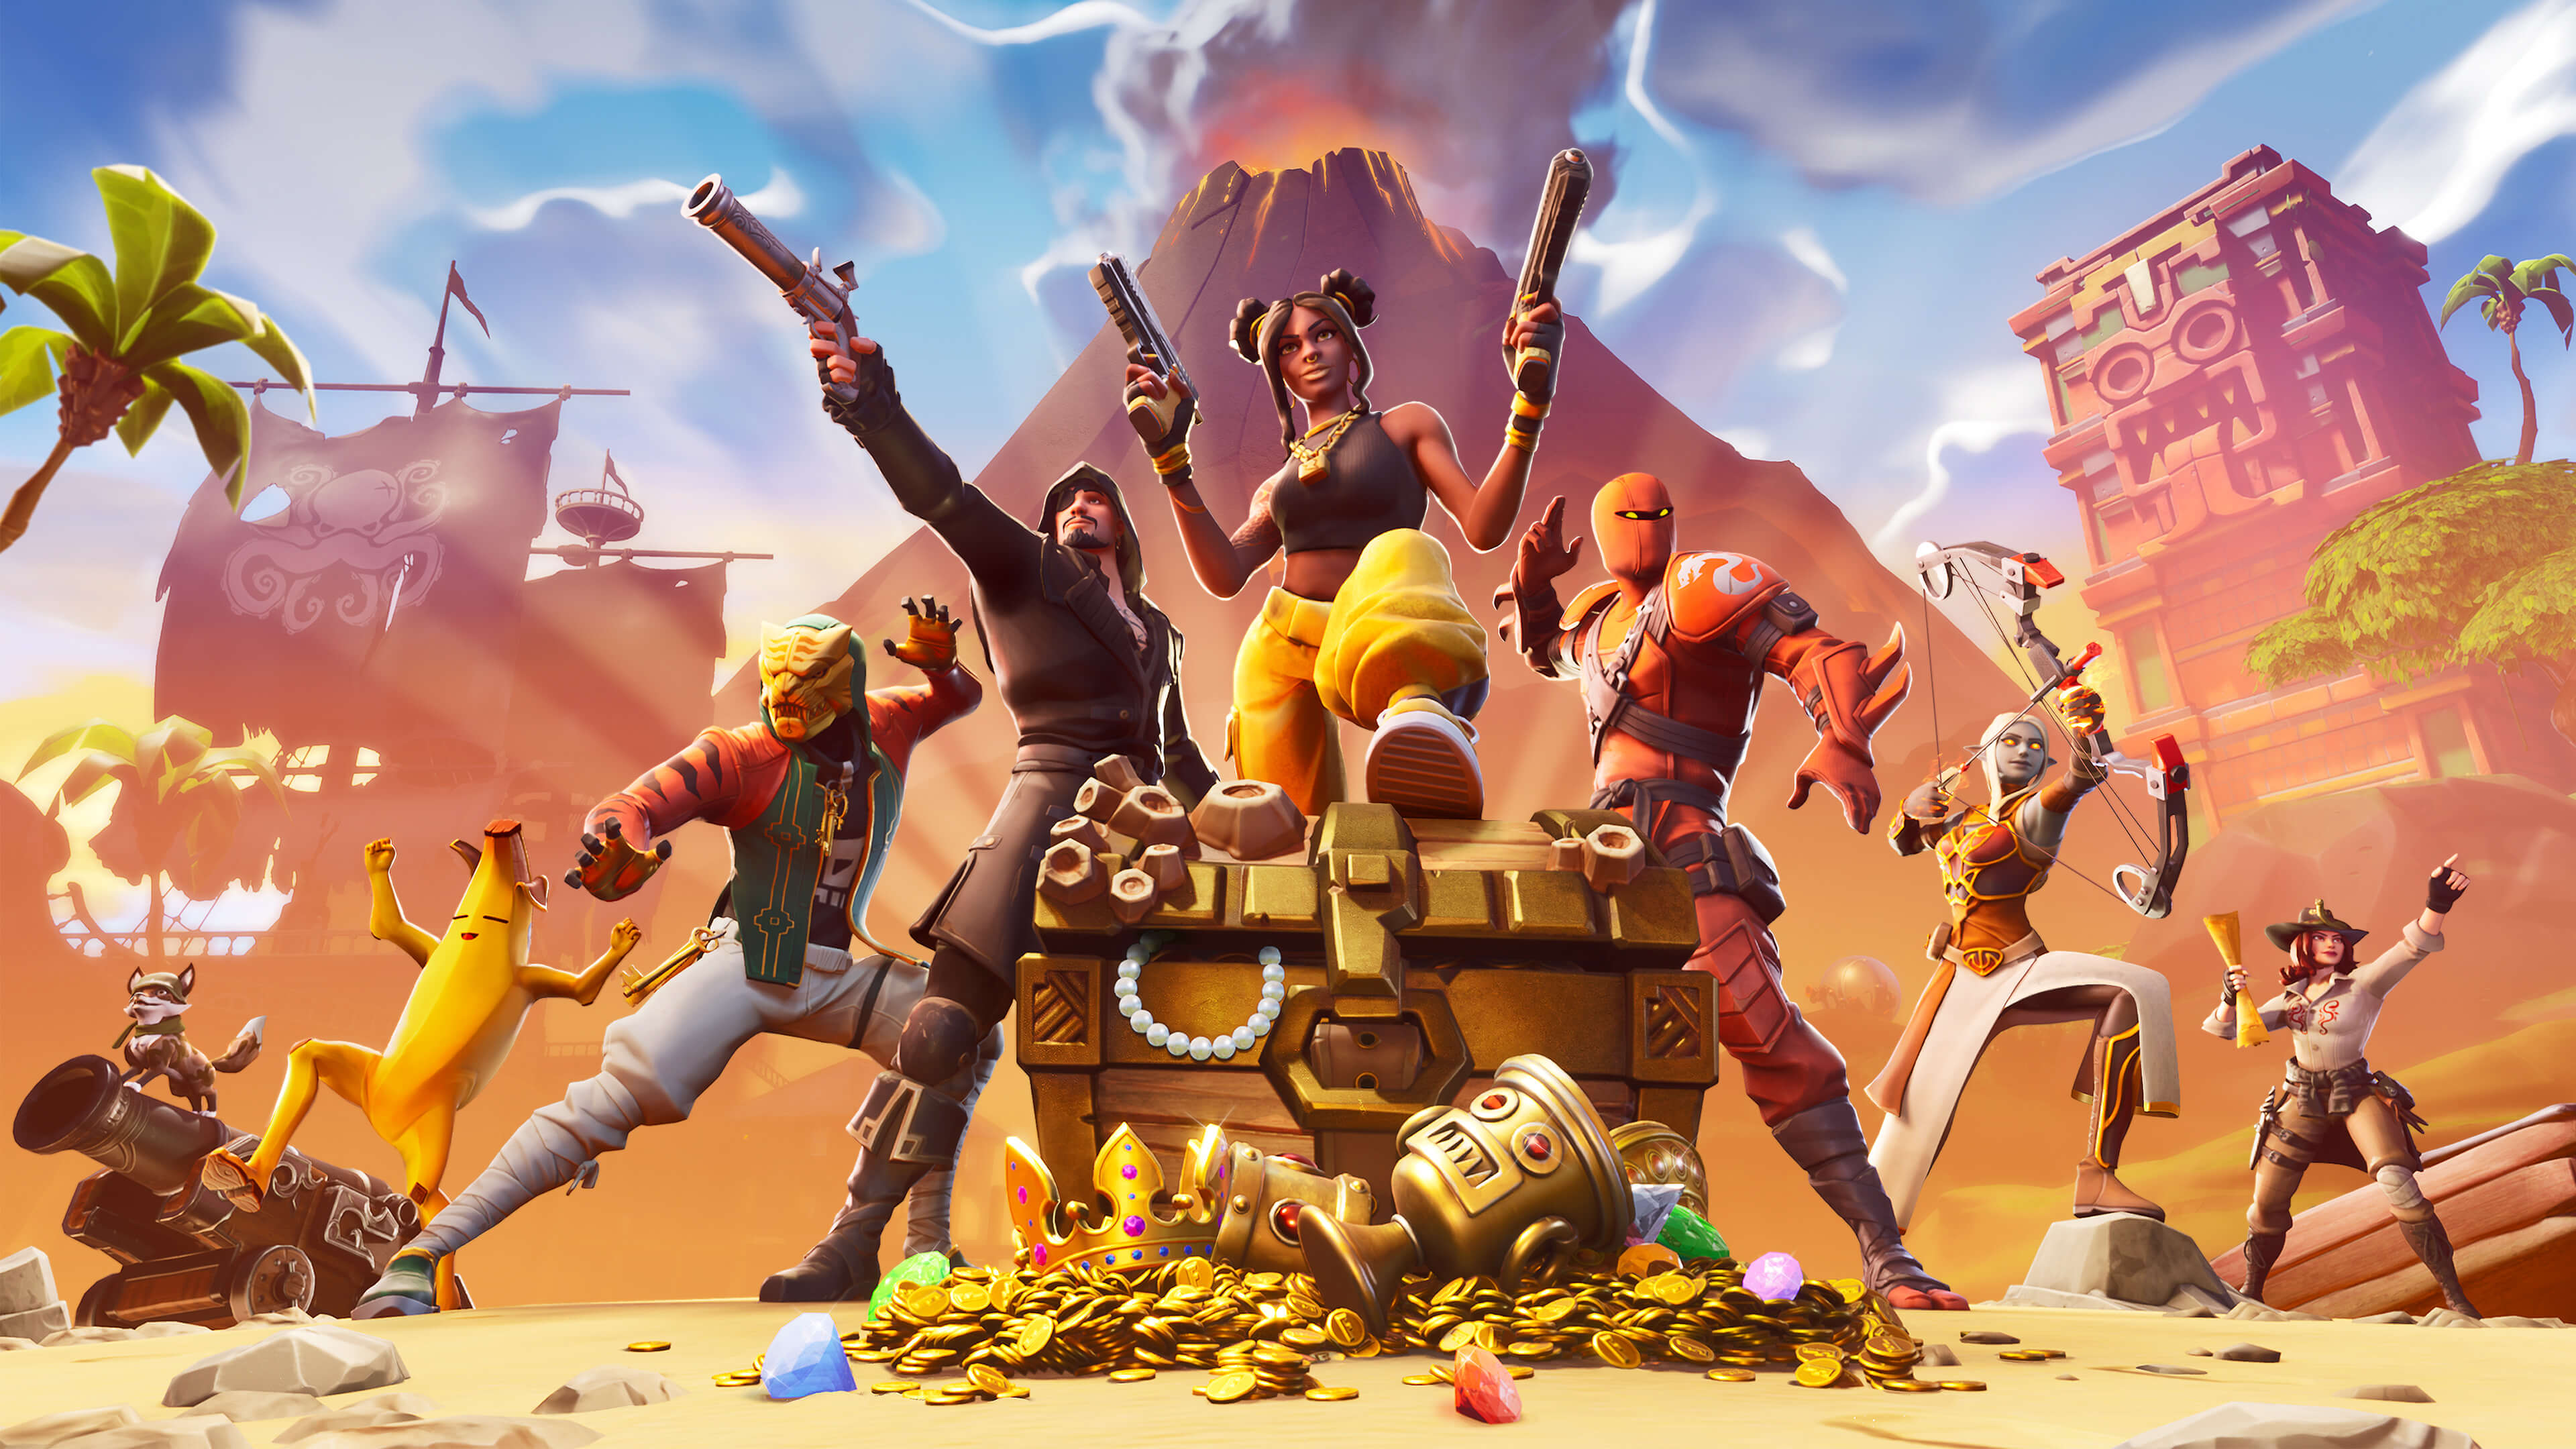 fortnite 2019 4k 1553074940 - Fortnite 2019 4k - ps games wallpapers, hd-wallpapers, games wallpapers, fortnite wallpapers, 8k wallpapers, 5k wallpapers, 4k-wallpapers, 2019 games wallpapers